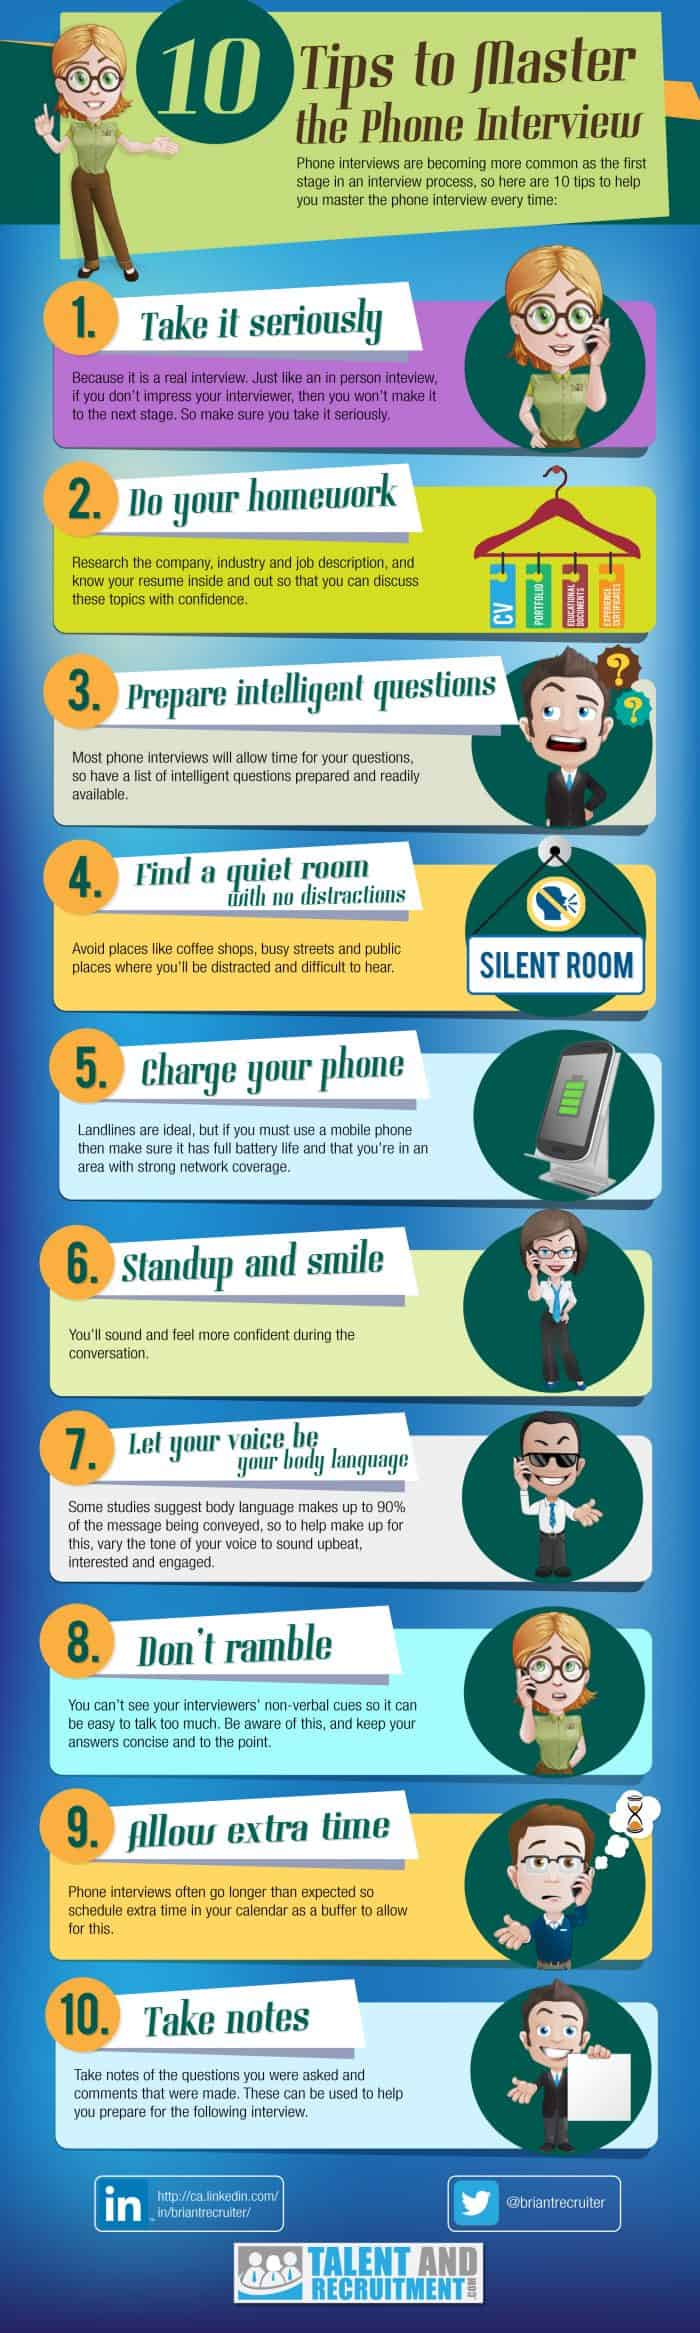 Tips to master the phone interview